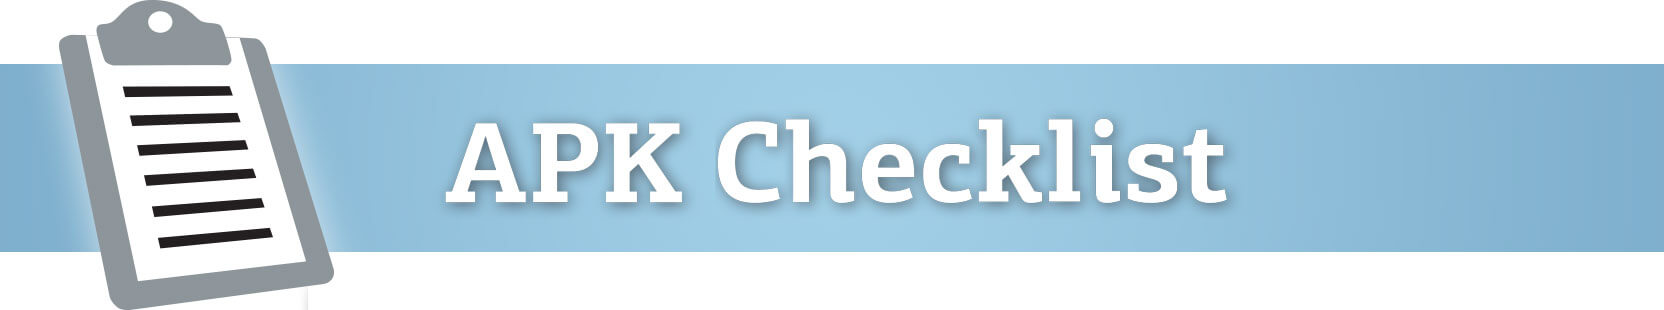 WEBSITE APK Checklist